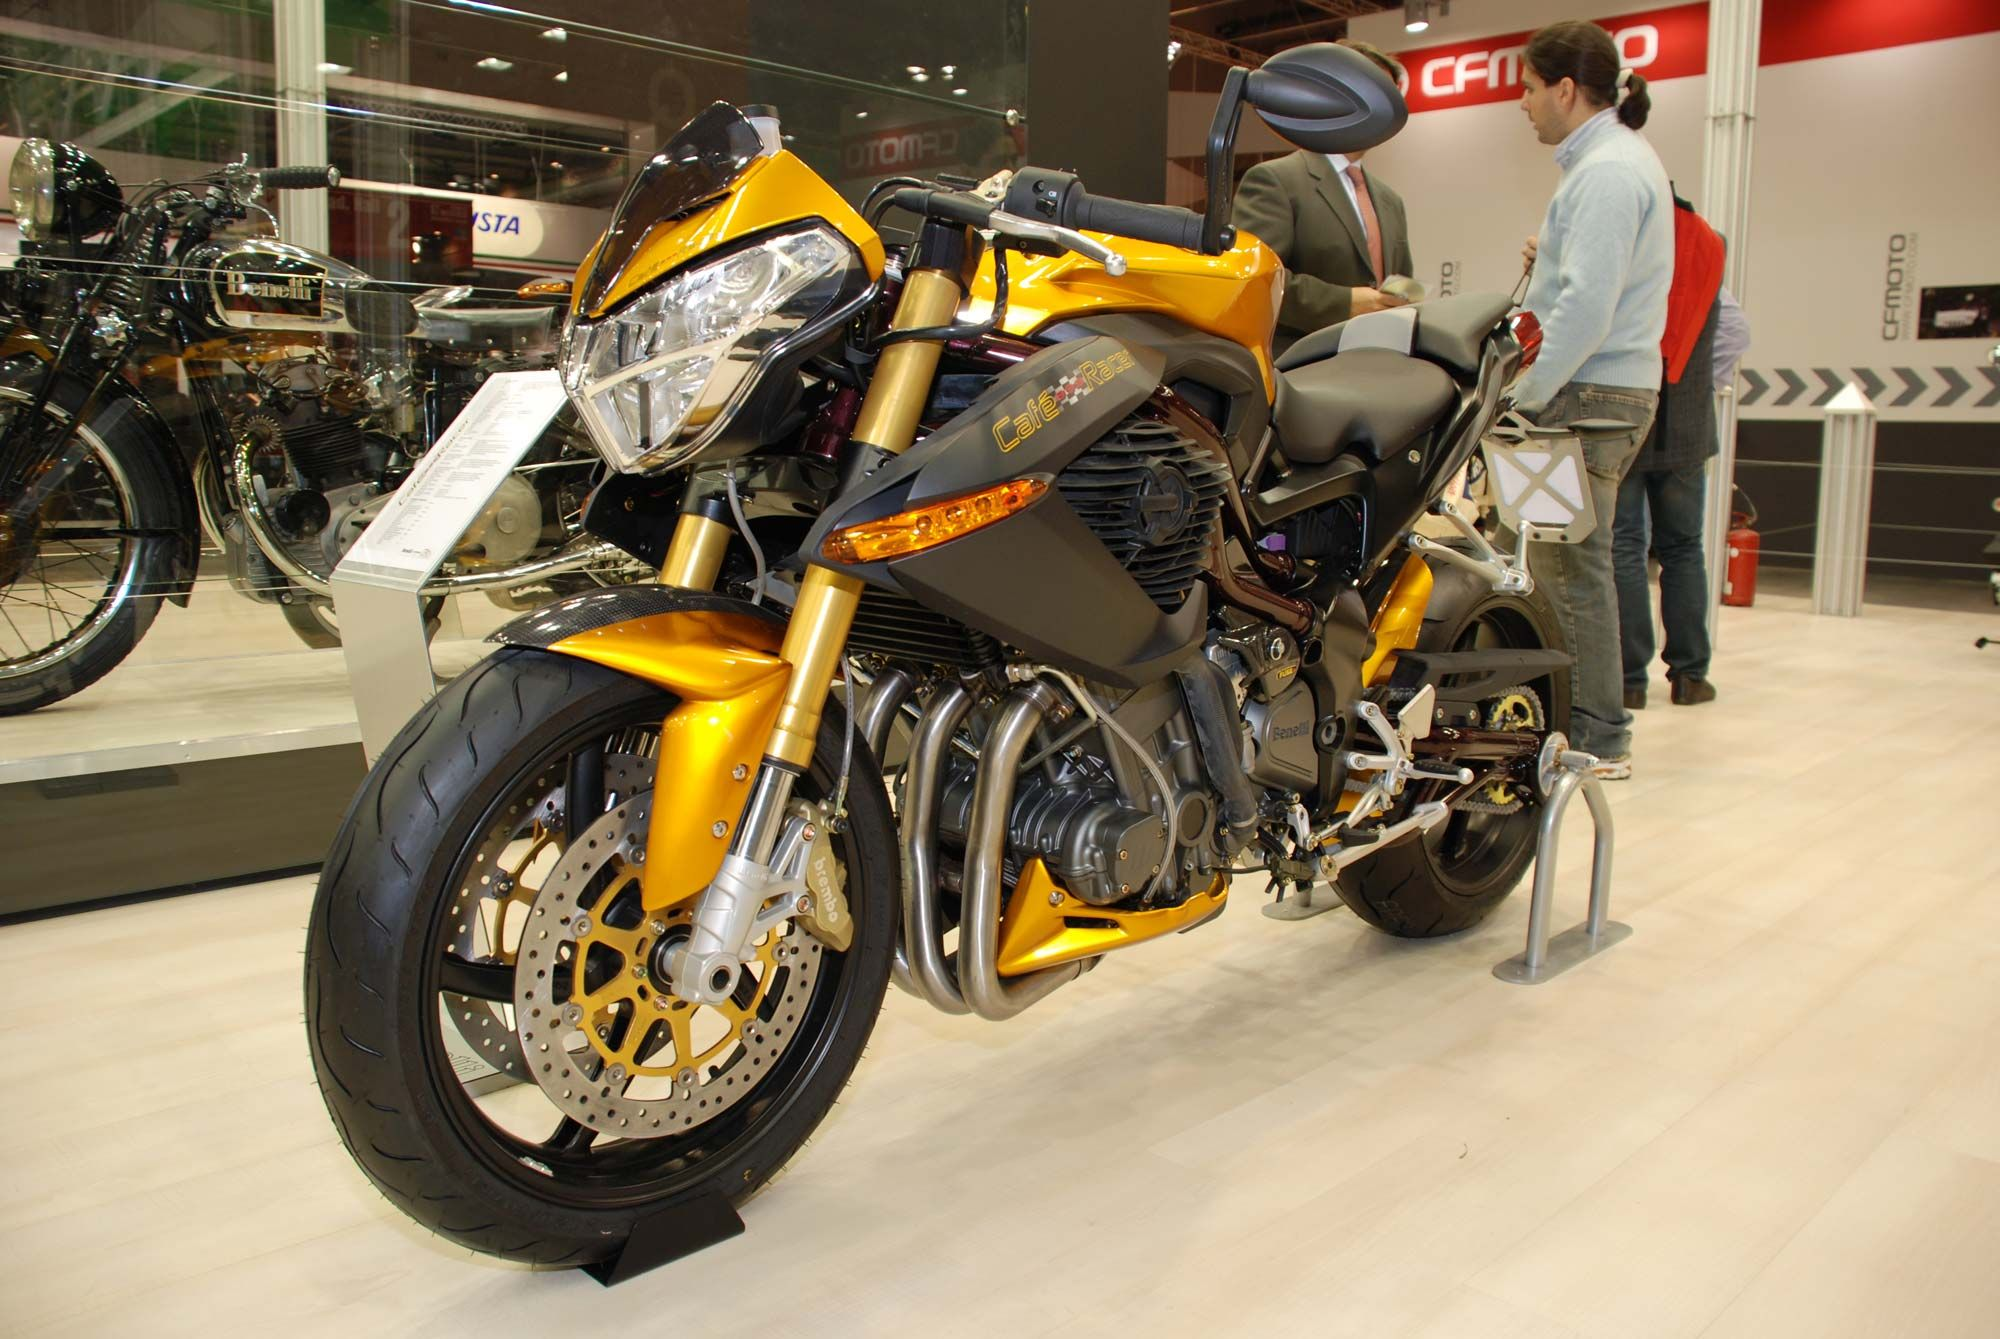 2010 Benelli Tnt 899 Cafe Racer Motor Pinterest Bike Jammy Wiring Tractor Lights Motorcycle Manufacturers Racers Motorcycles